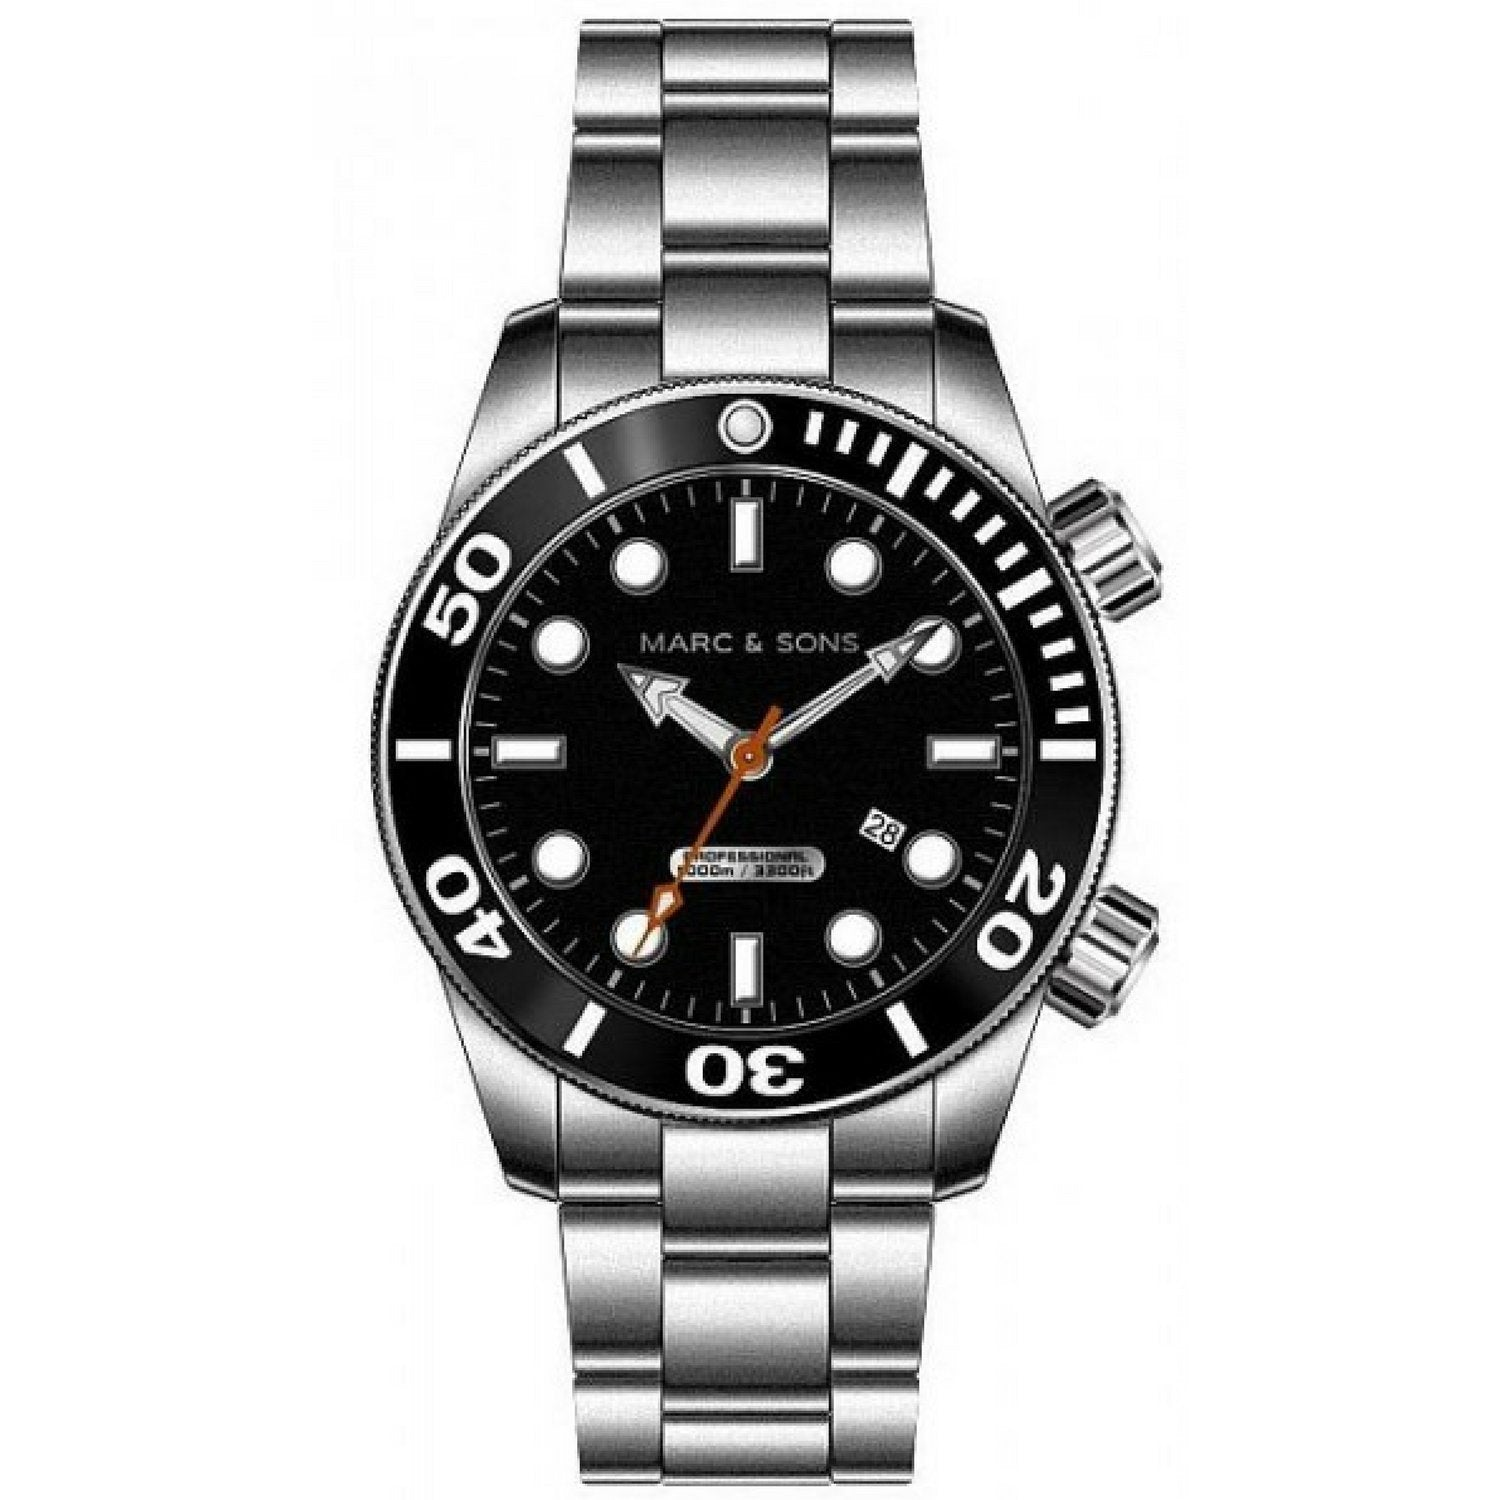 MARC & SONS 1000M Professional automatic Diver watch MSD-020